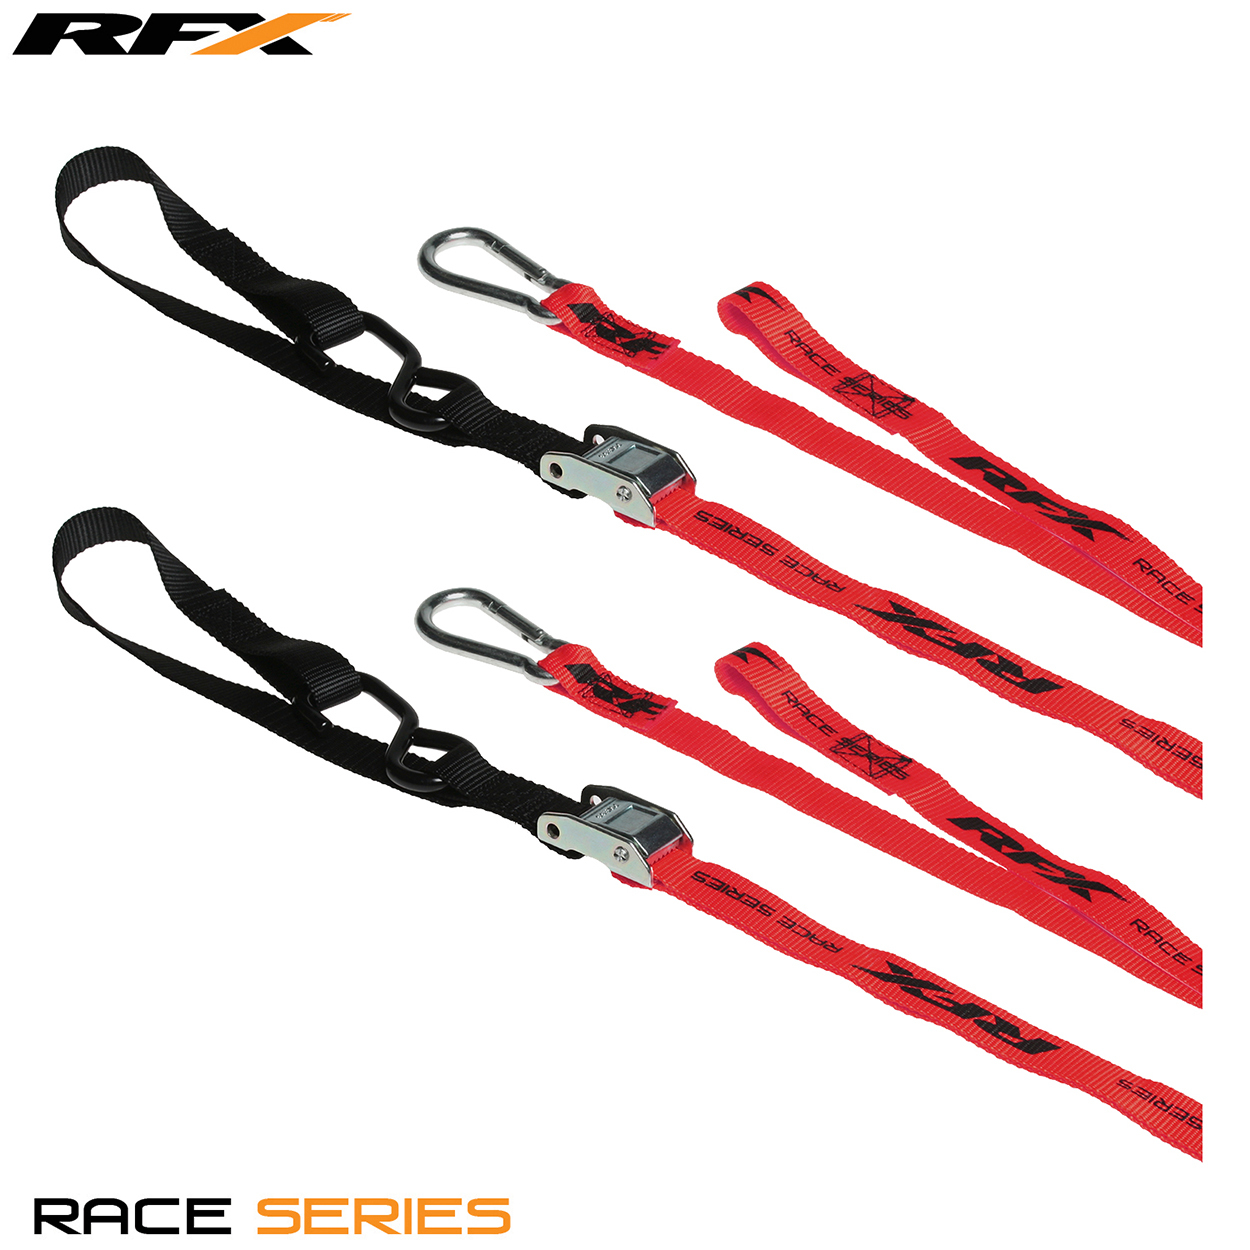 Rfx race series 1. 0 tie downs (red/black) with extra loop & carabiner clip - fxtd 30000 55rd 30577. 1509706331. 1280. 1280